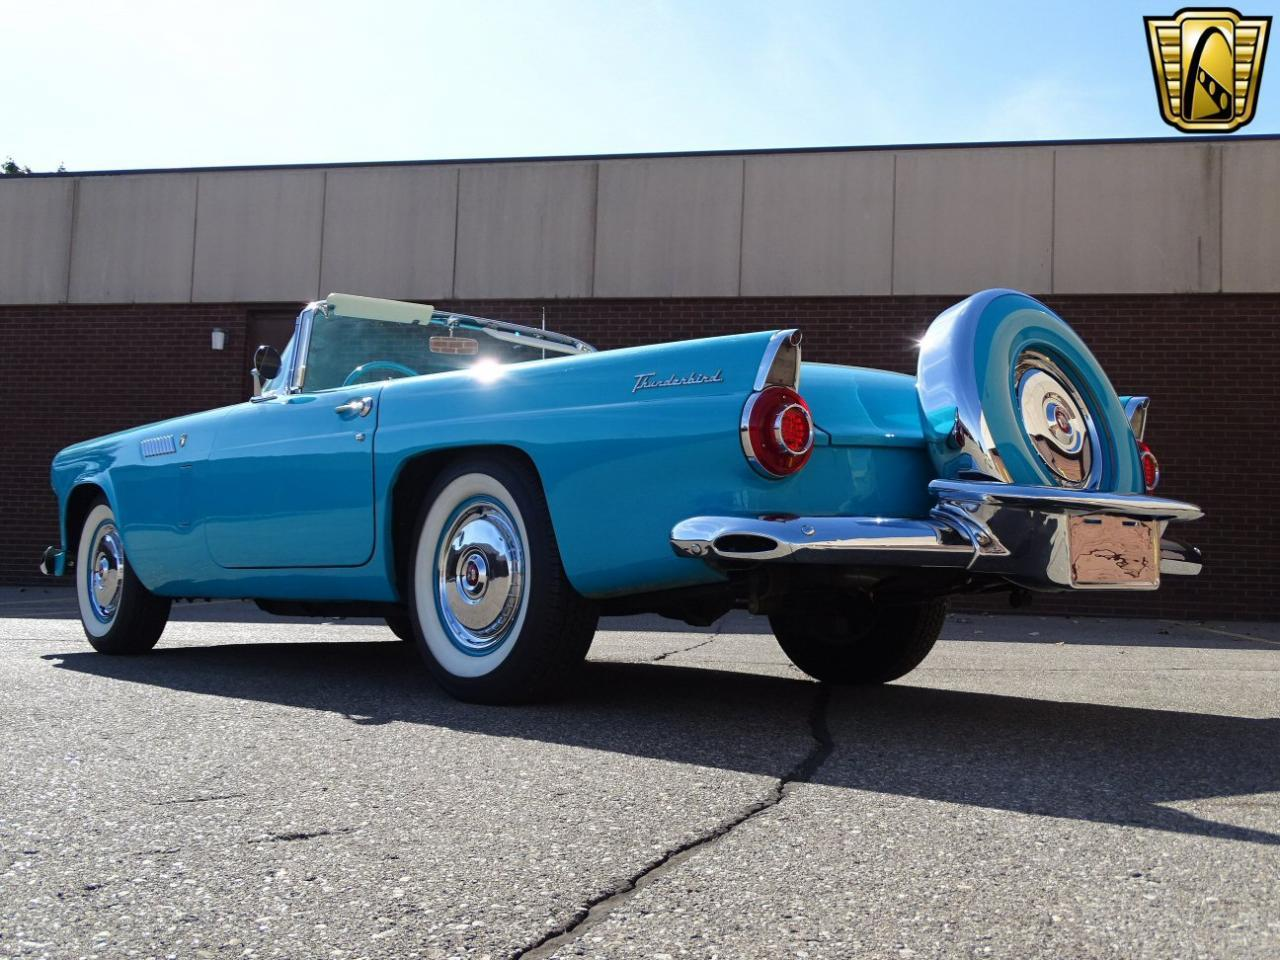 Large Picture of Classic '56 Thunderbird located in Michigan - $34,995.00 Offered by Gateway Classic Cars - Detroit - M6BX